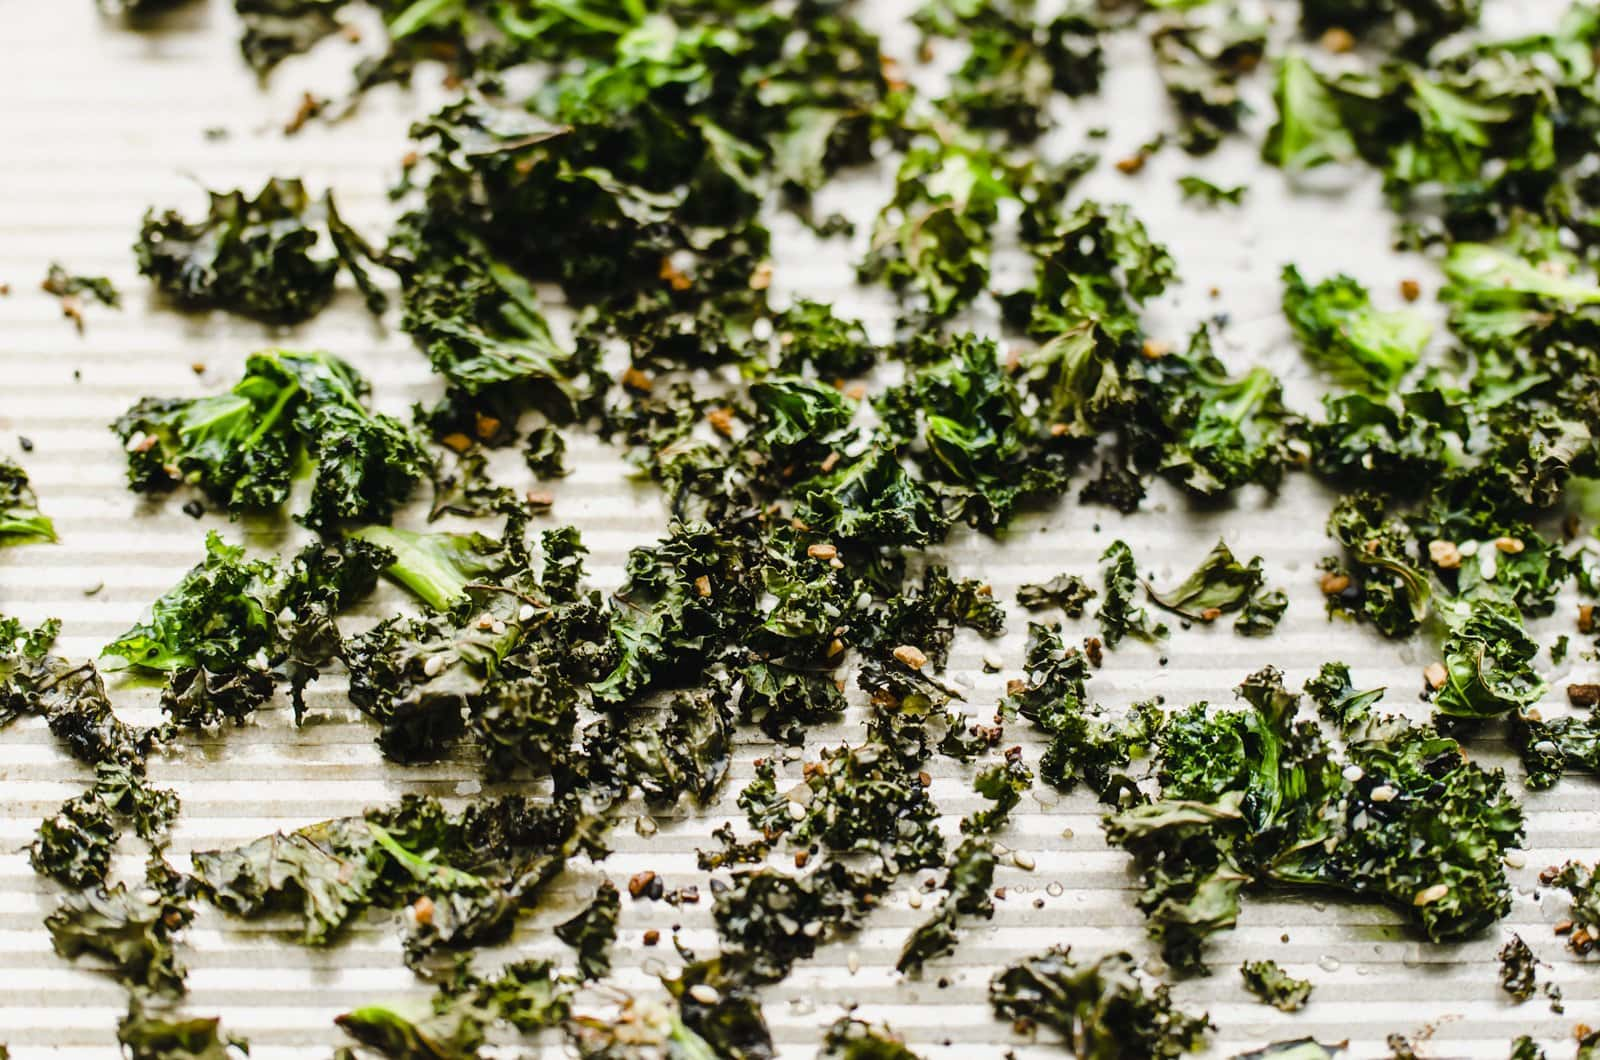 A close-up shot of baked kale chips on a baking sheet.